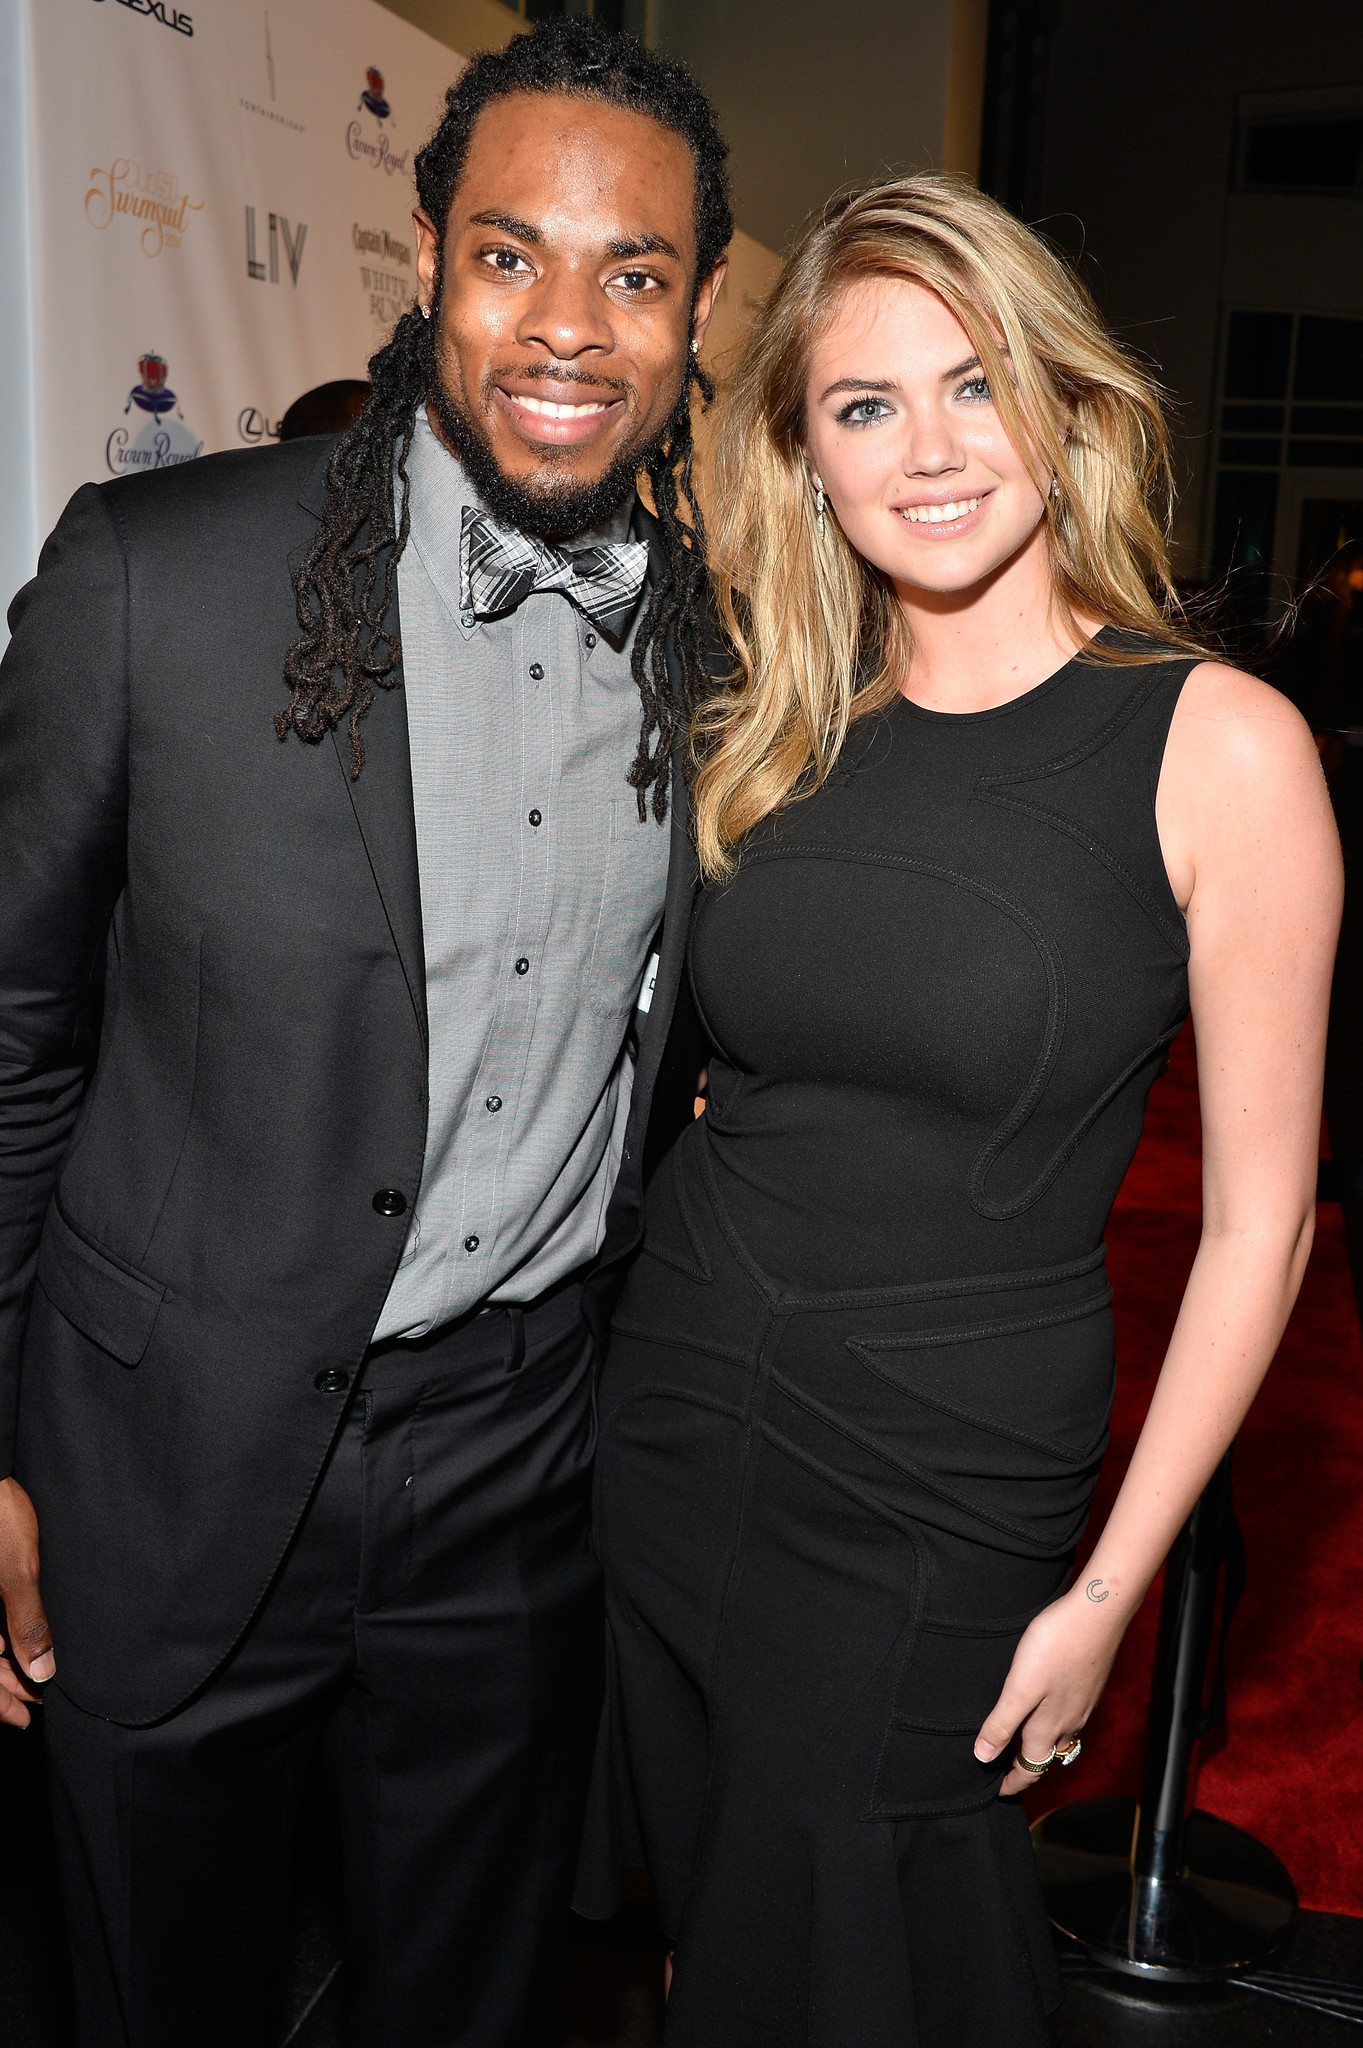 Celeb-spotting around South Florida - Richard Sherman and Kate Upton